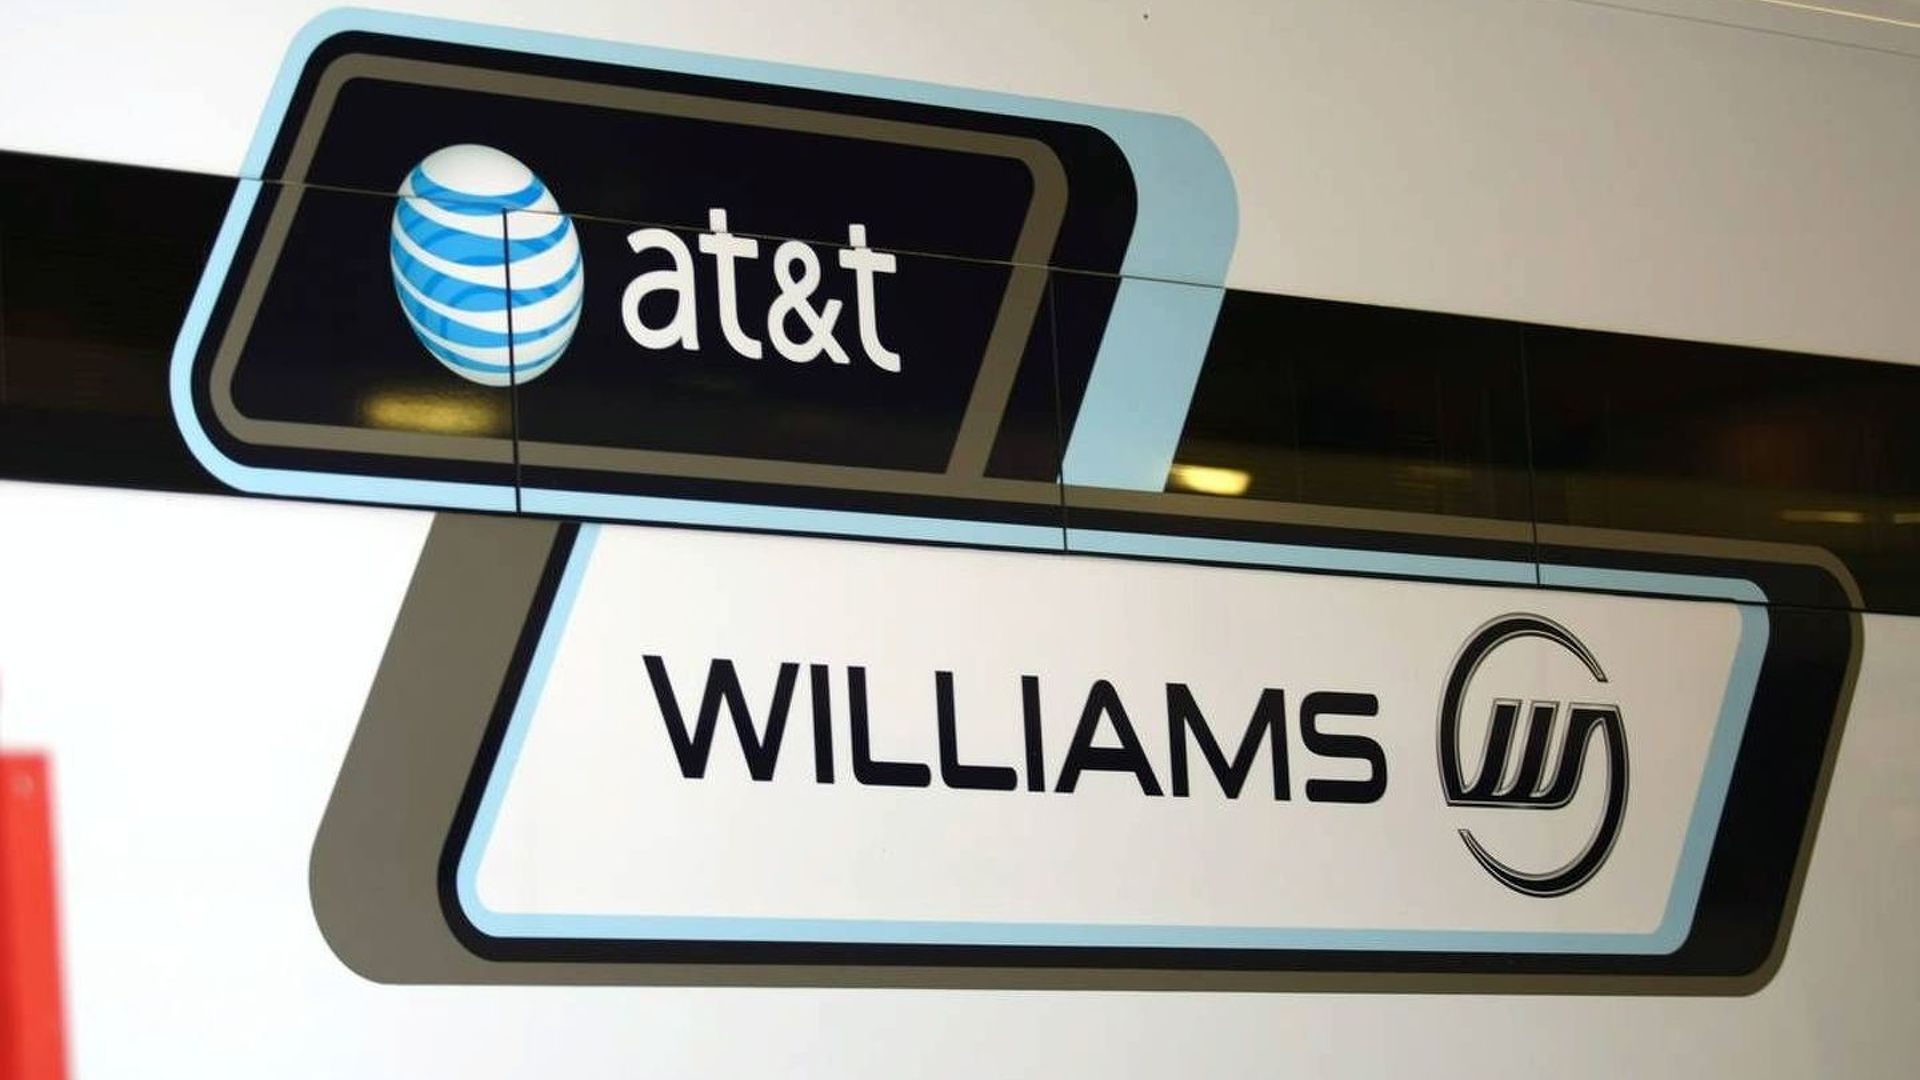 Williams enjoys status but eyes carmaker alliance